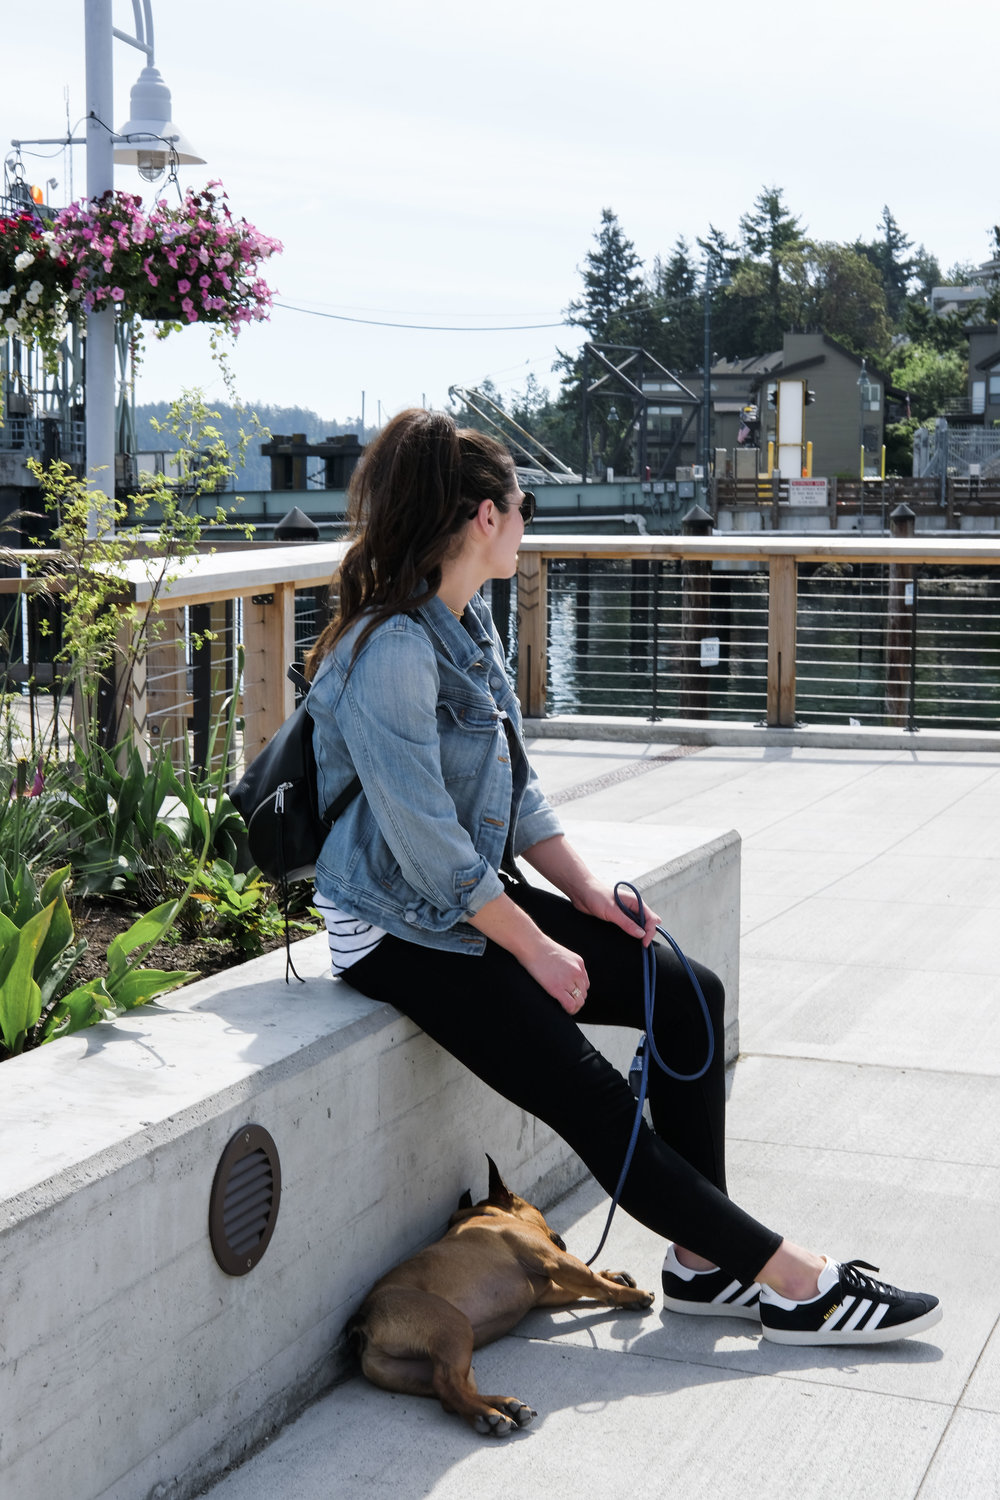 san juan islands washington_orcas island travel guide_what to do where to stay in san juan islands washington_comfortable cute tavel shoes_black skinny jeans_adidas gazelle sneakers_j.crew denim jacket_rebecca minkoff medium julien backpack_01.jpg